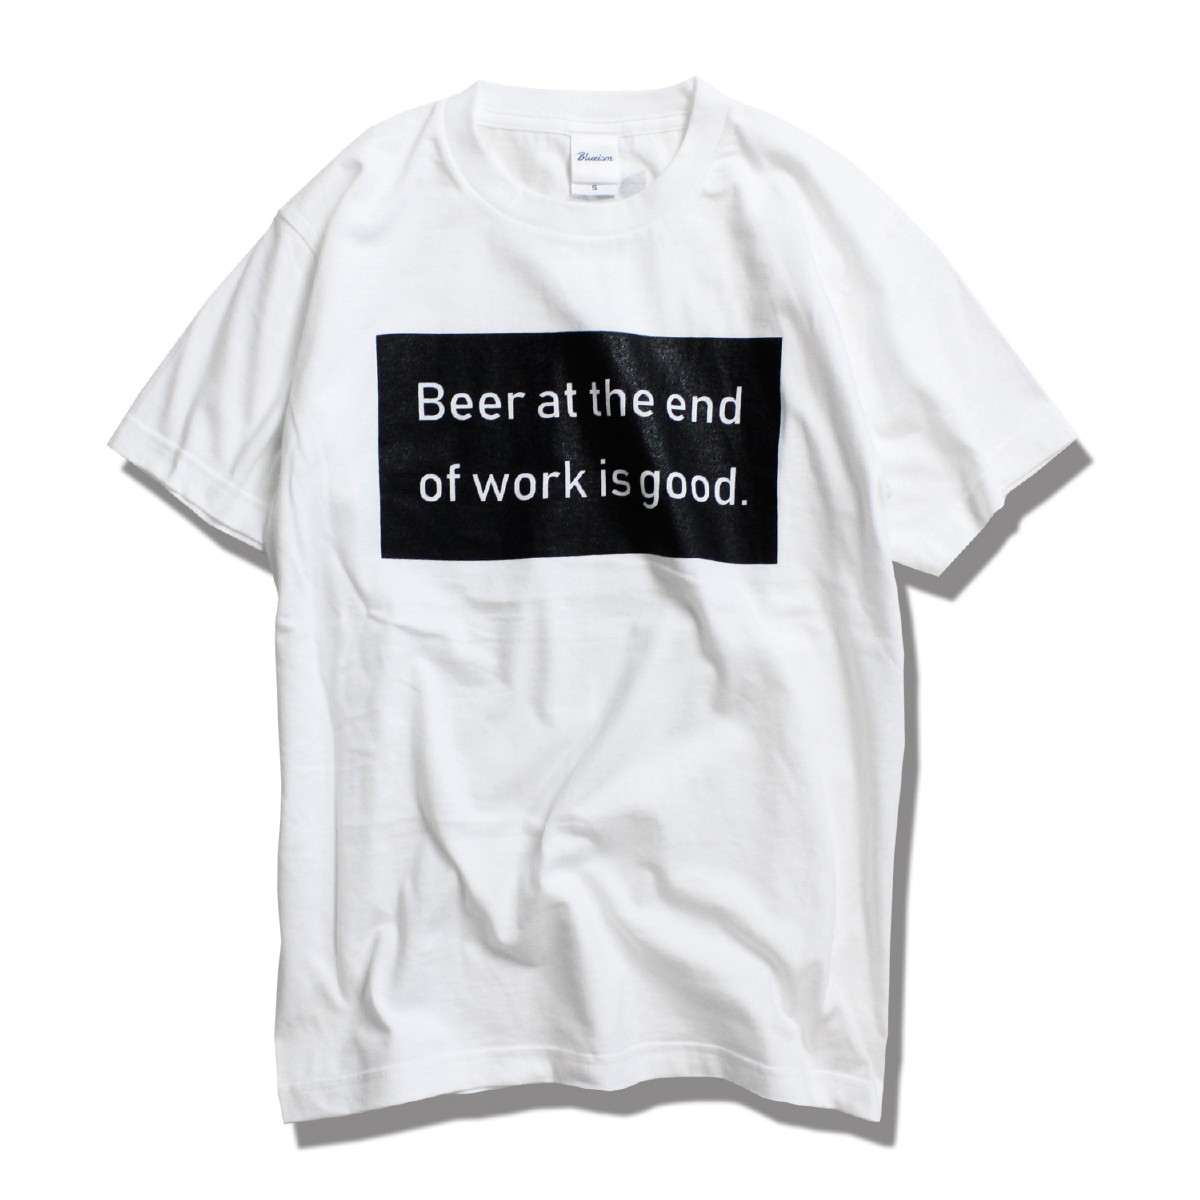 【62%OFF】Blueism ブルーイズム Beer Box Message T-shirt